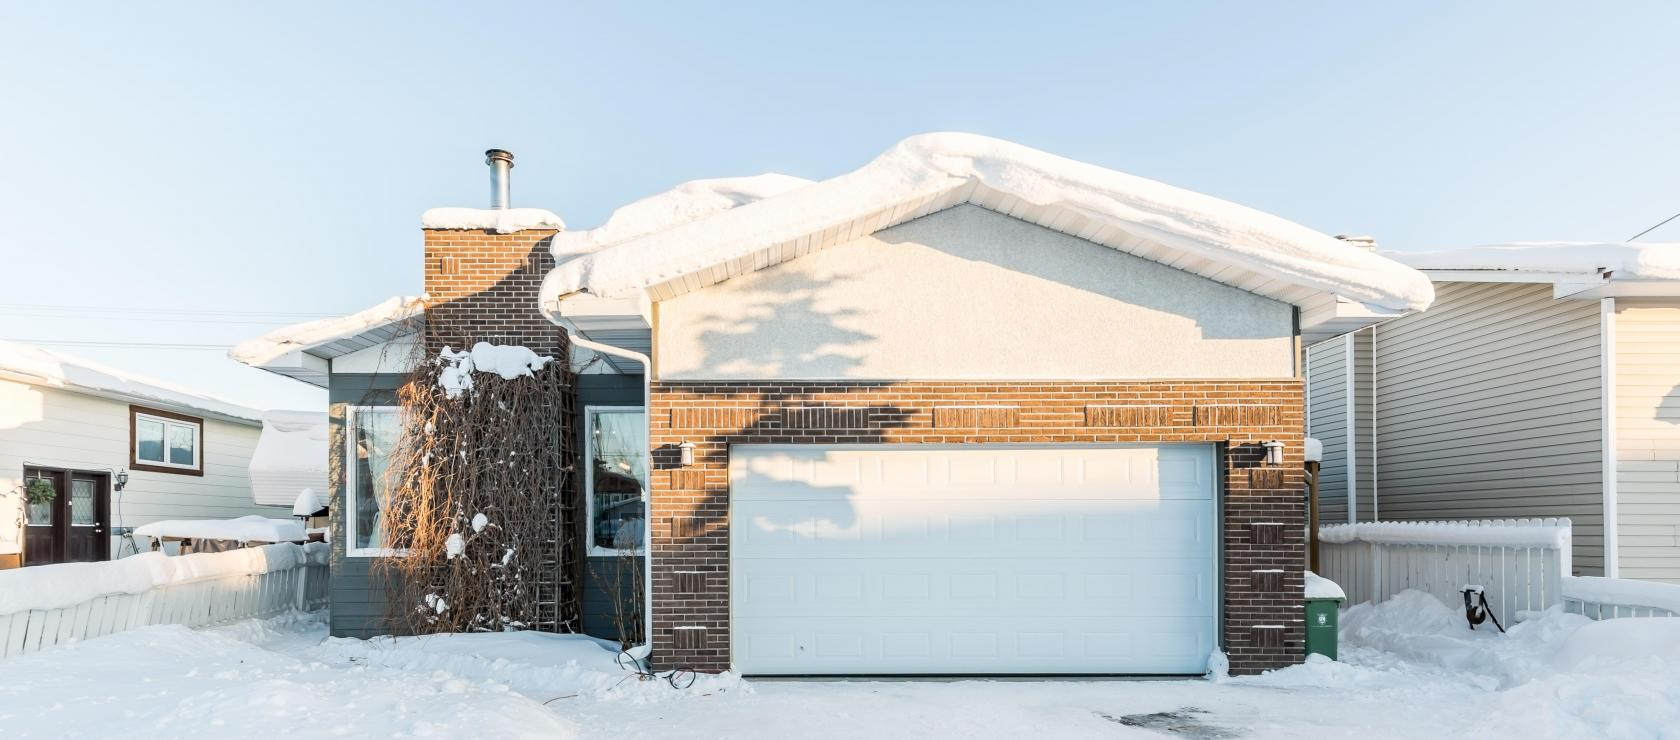 20 Bromley Drive, Range Lake, Yellowknife 2